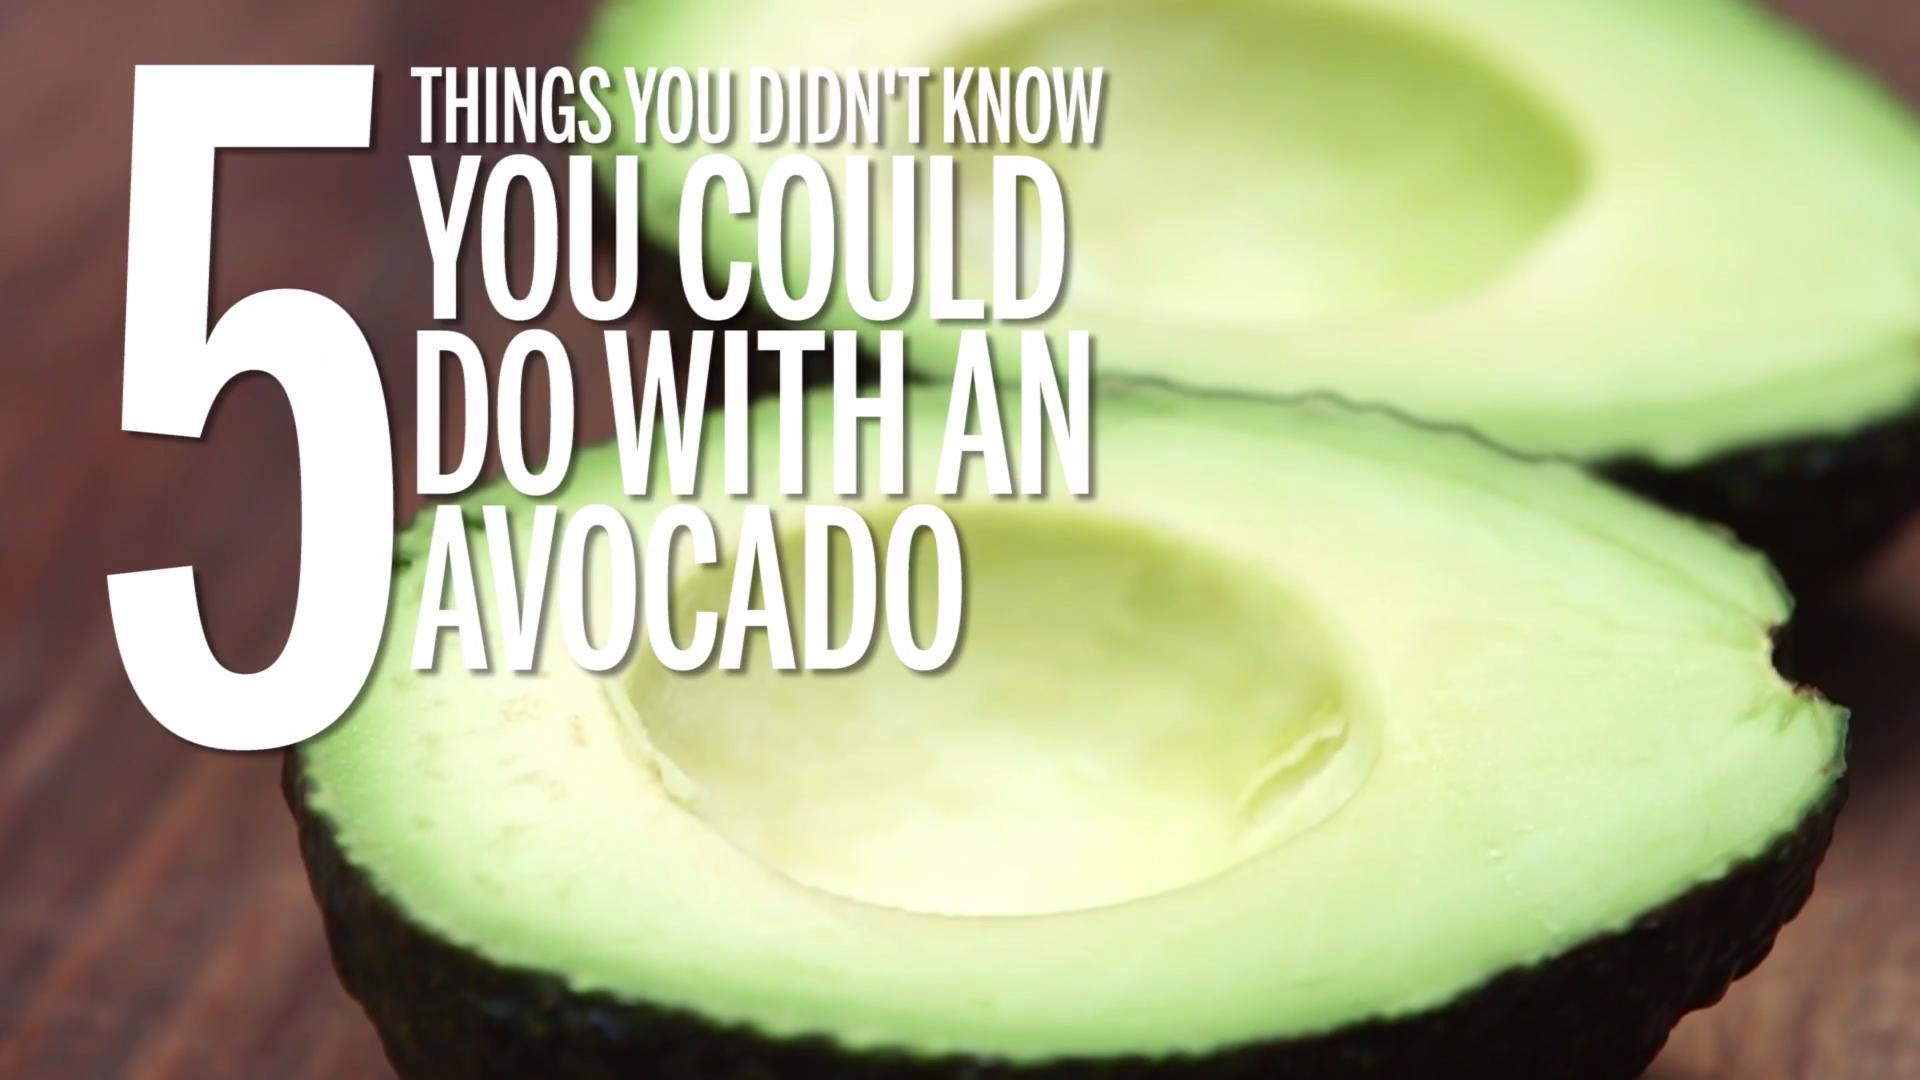 5 Things You Didn't Know You Could Do With an Avocado